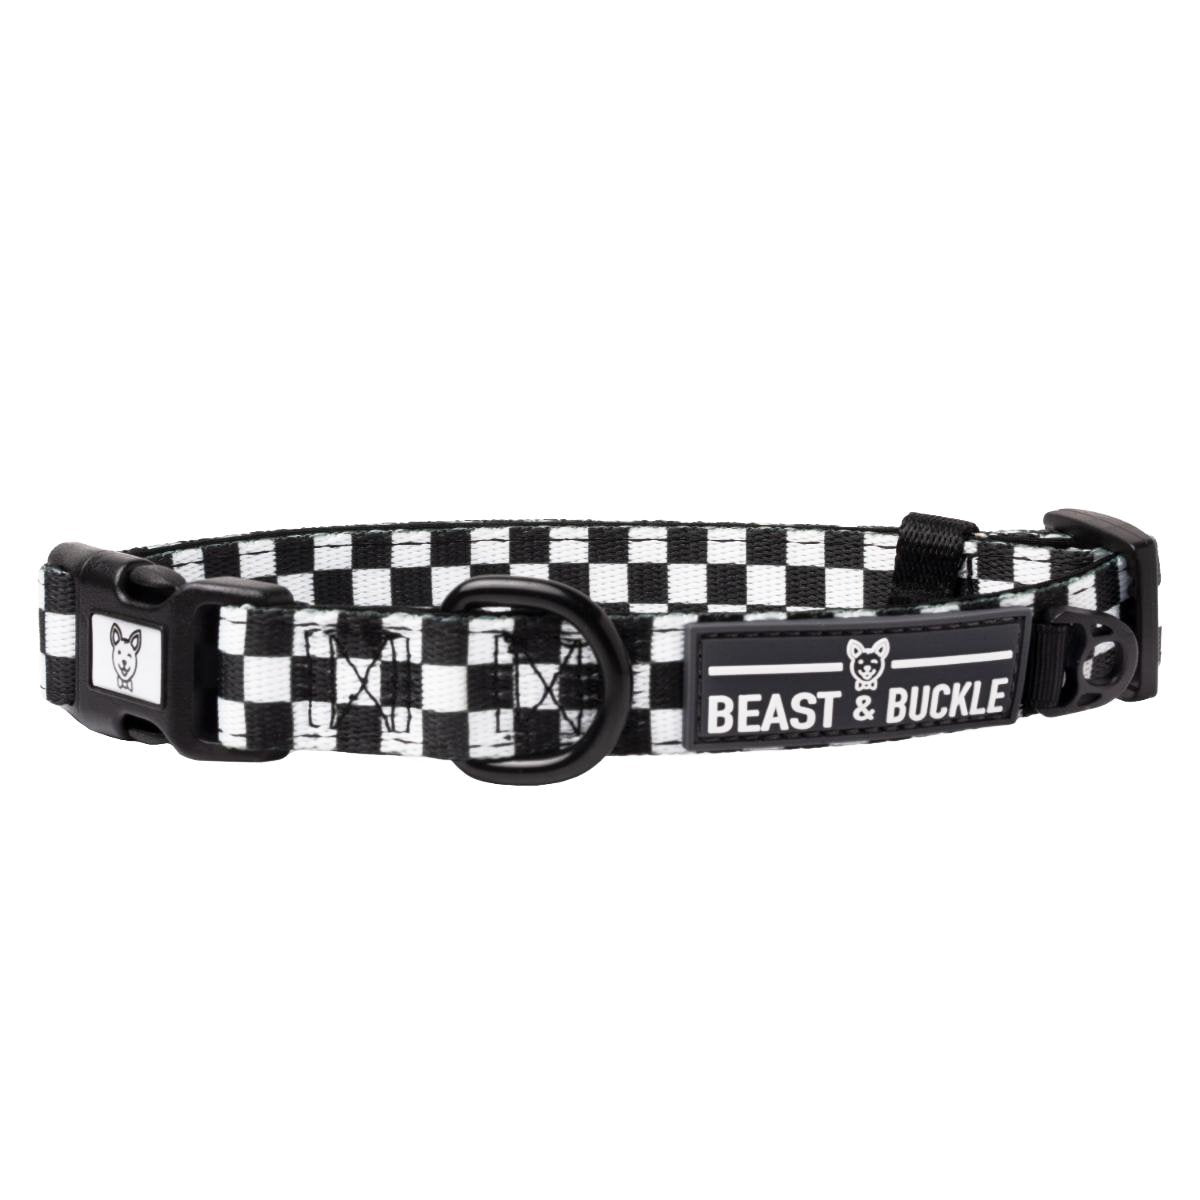 Vroom Vroom Dog Collar - Beast & Buckle